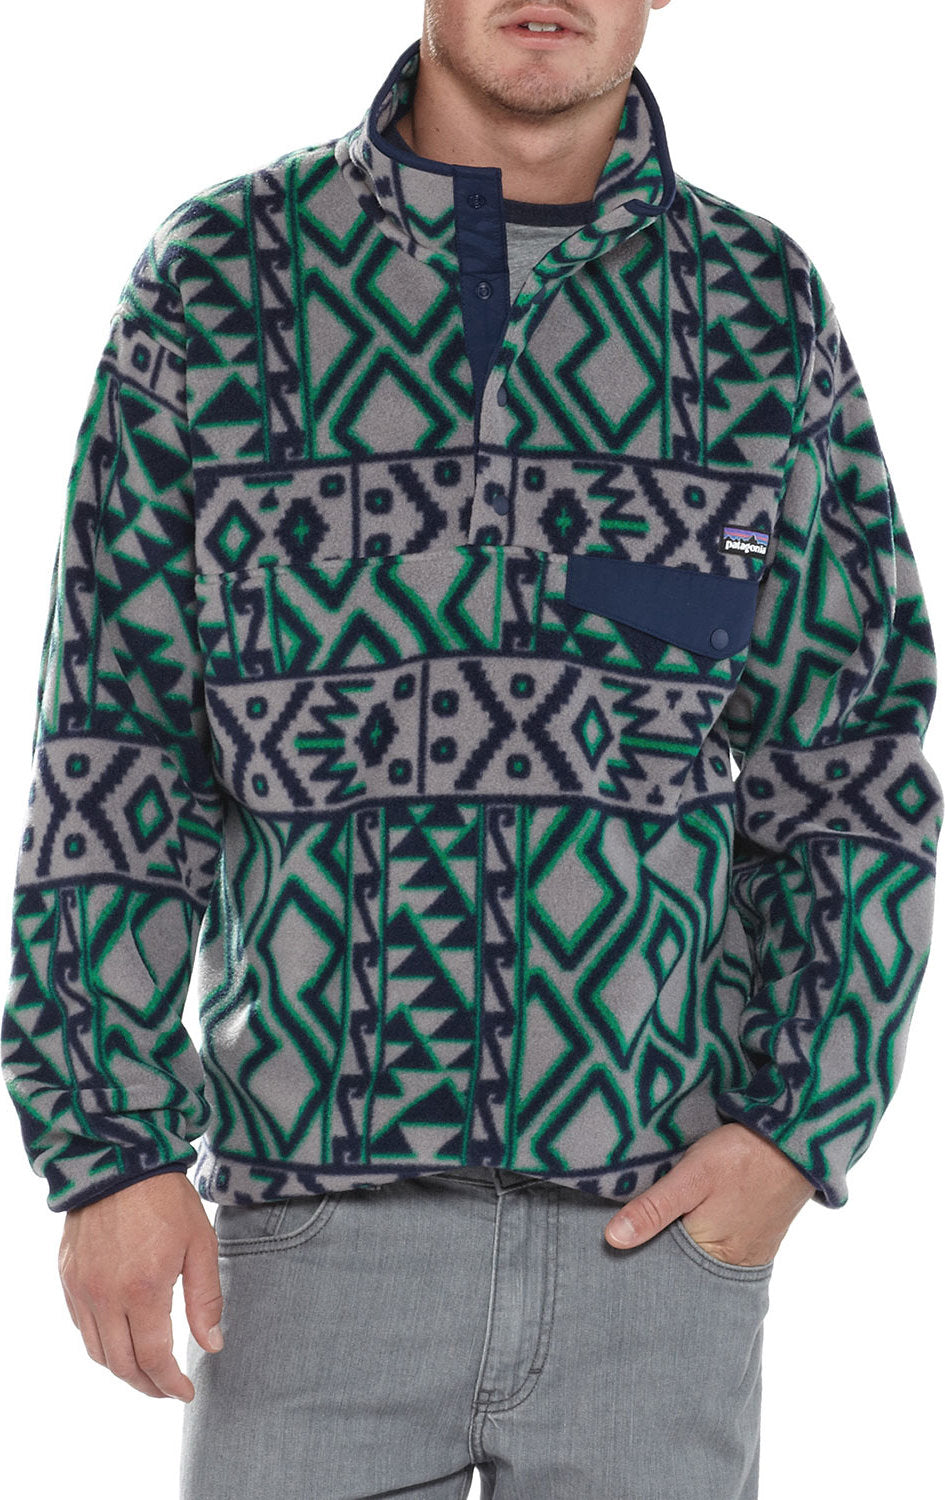 442dc69f73f Patagonia Synchilla Snap-t Fleece Pullover - Men s